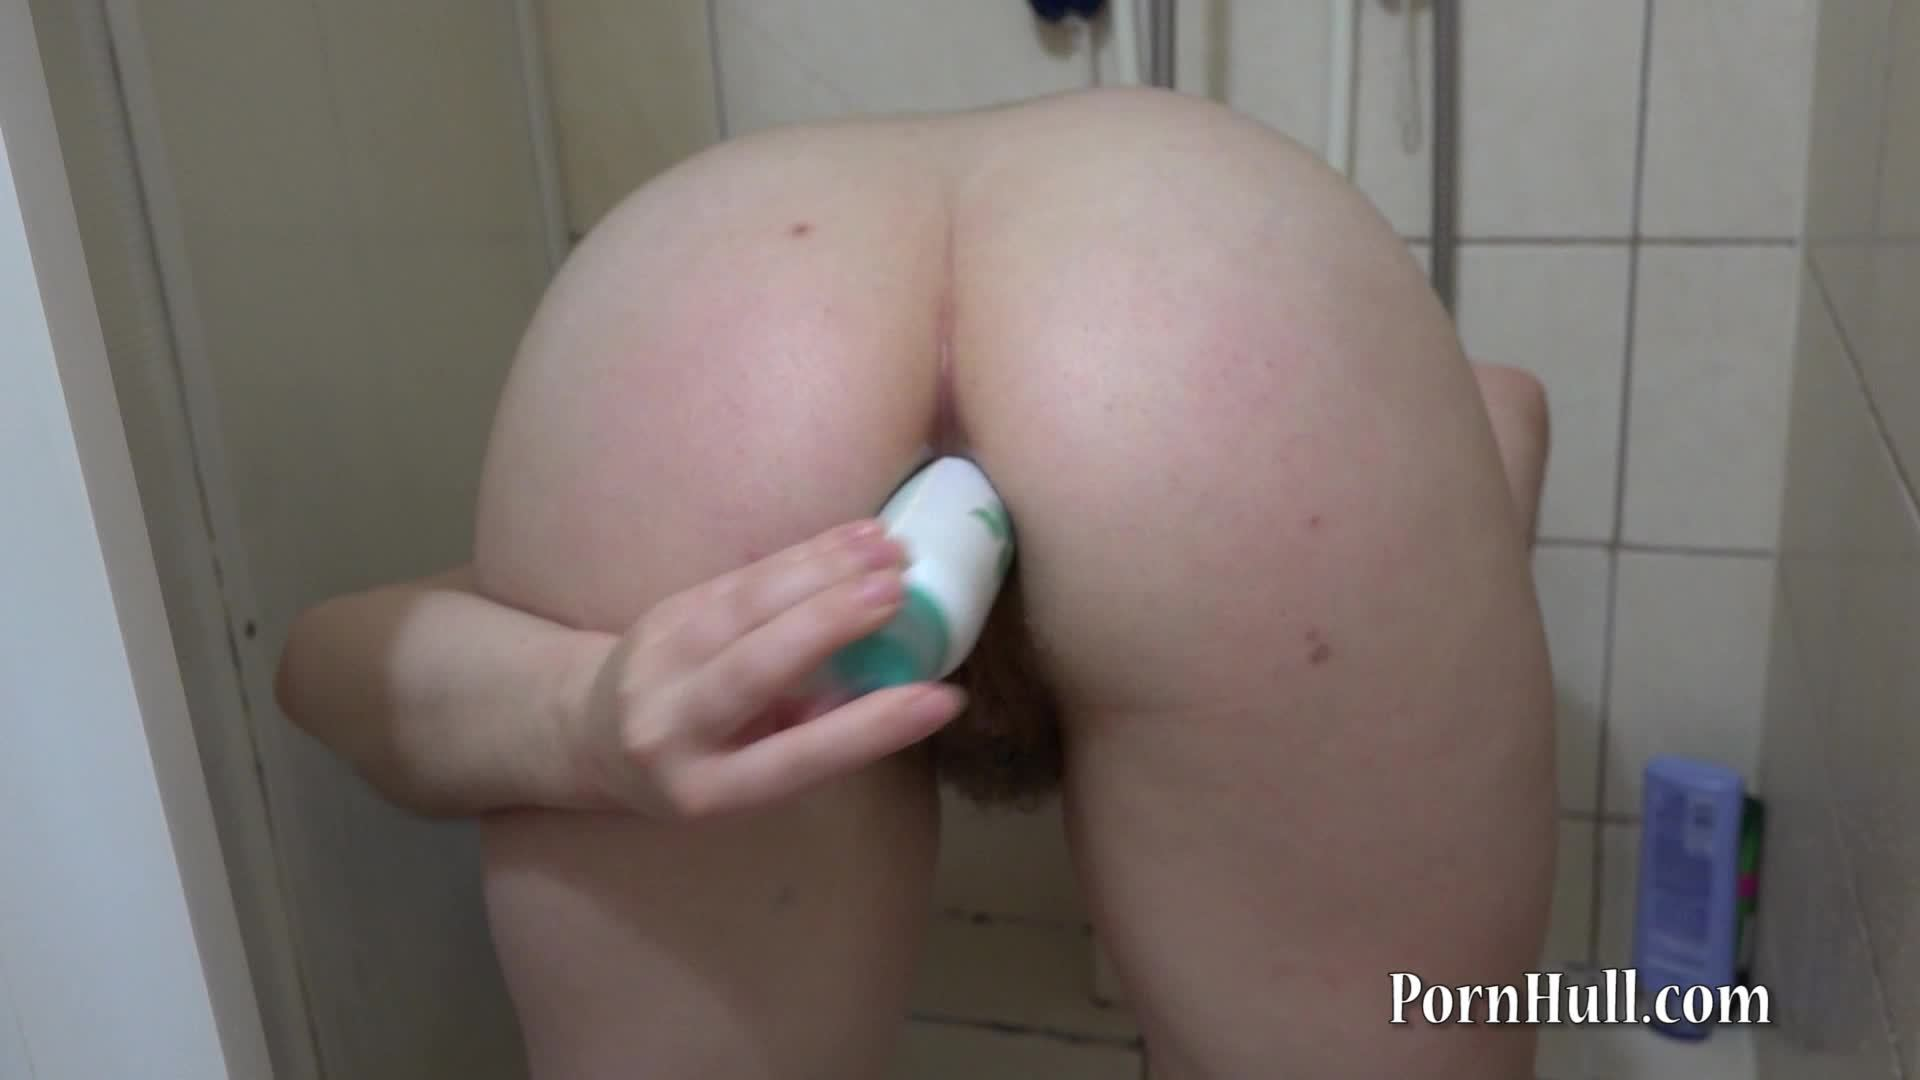 anal in the shower with a can of deodorant